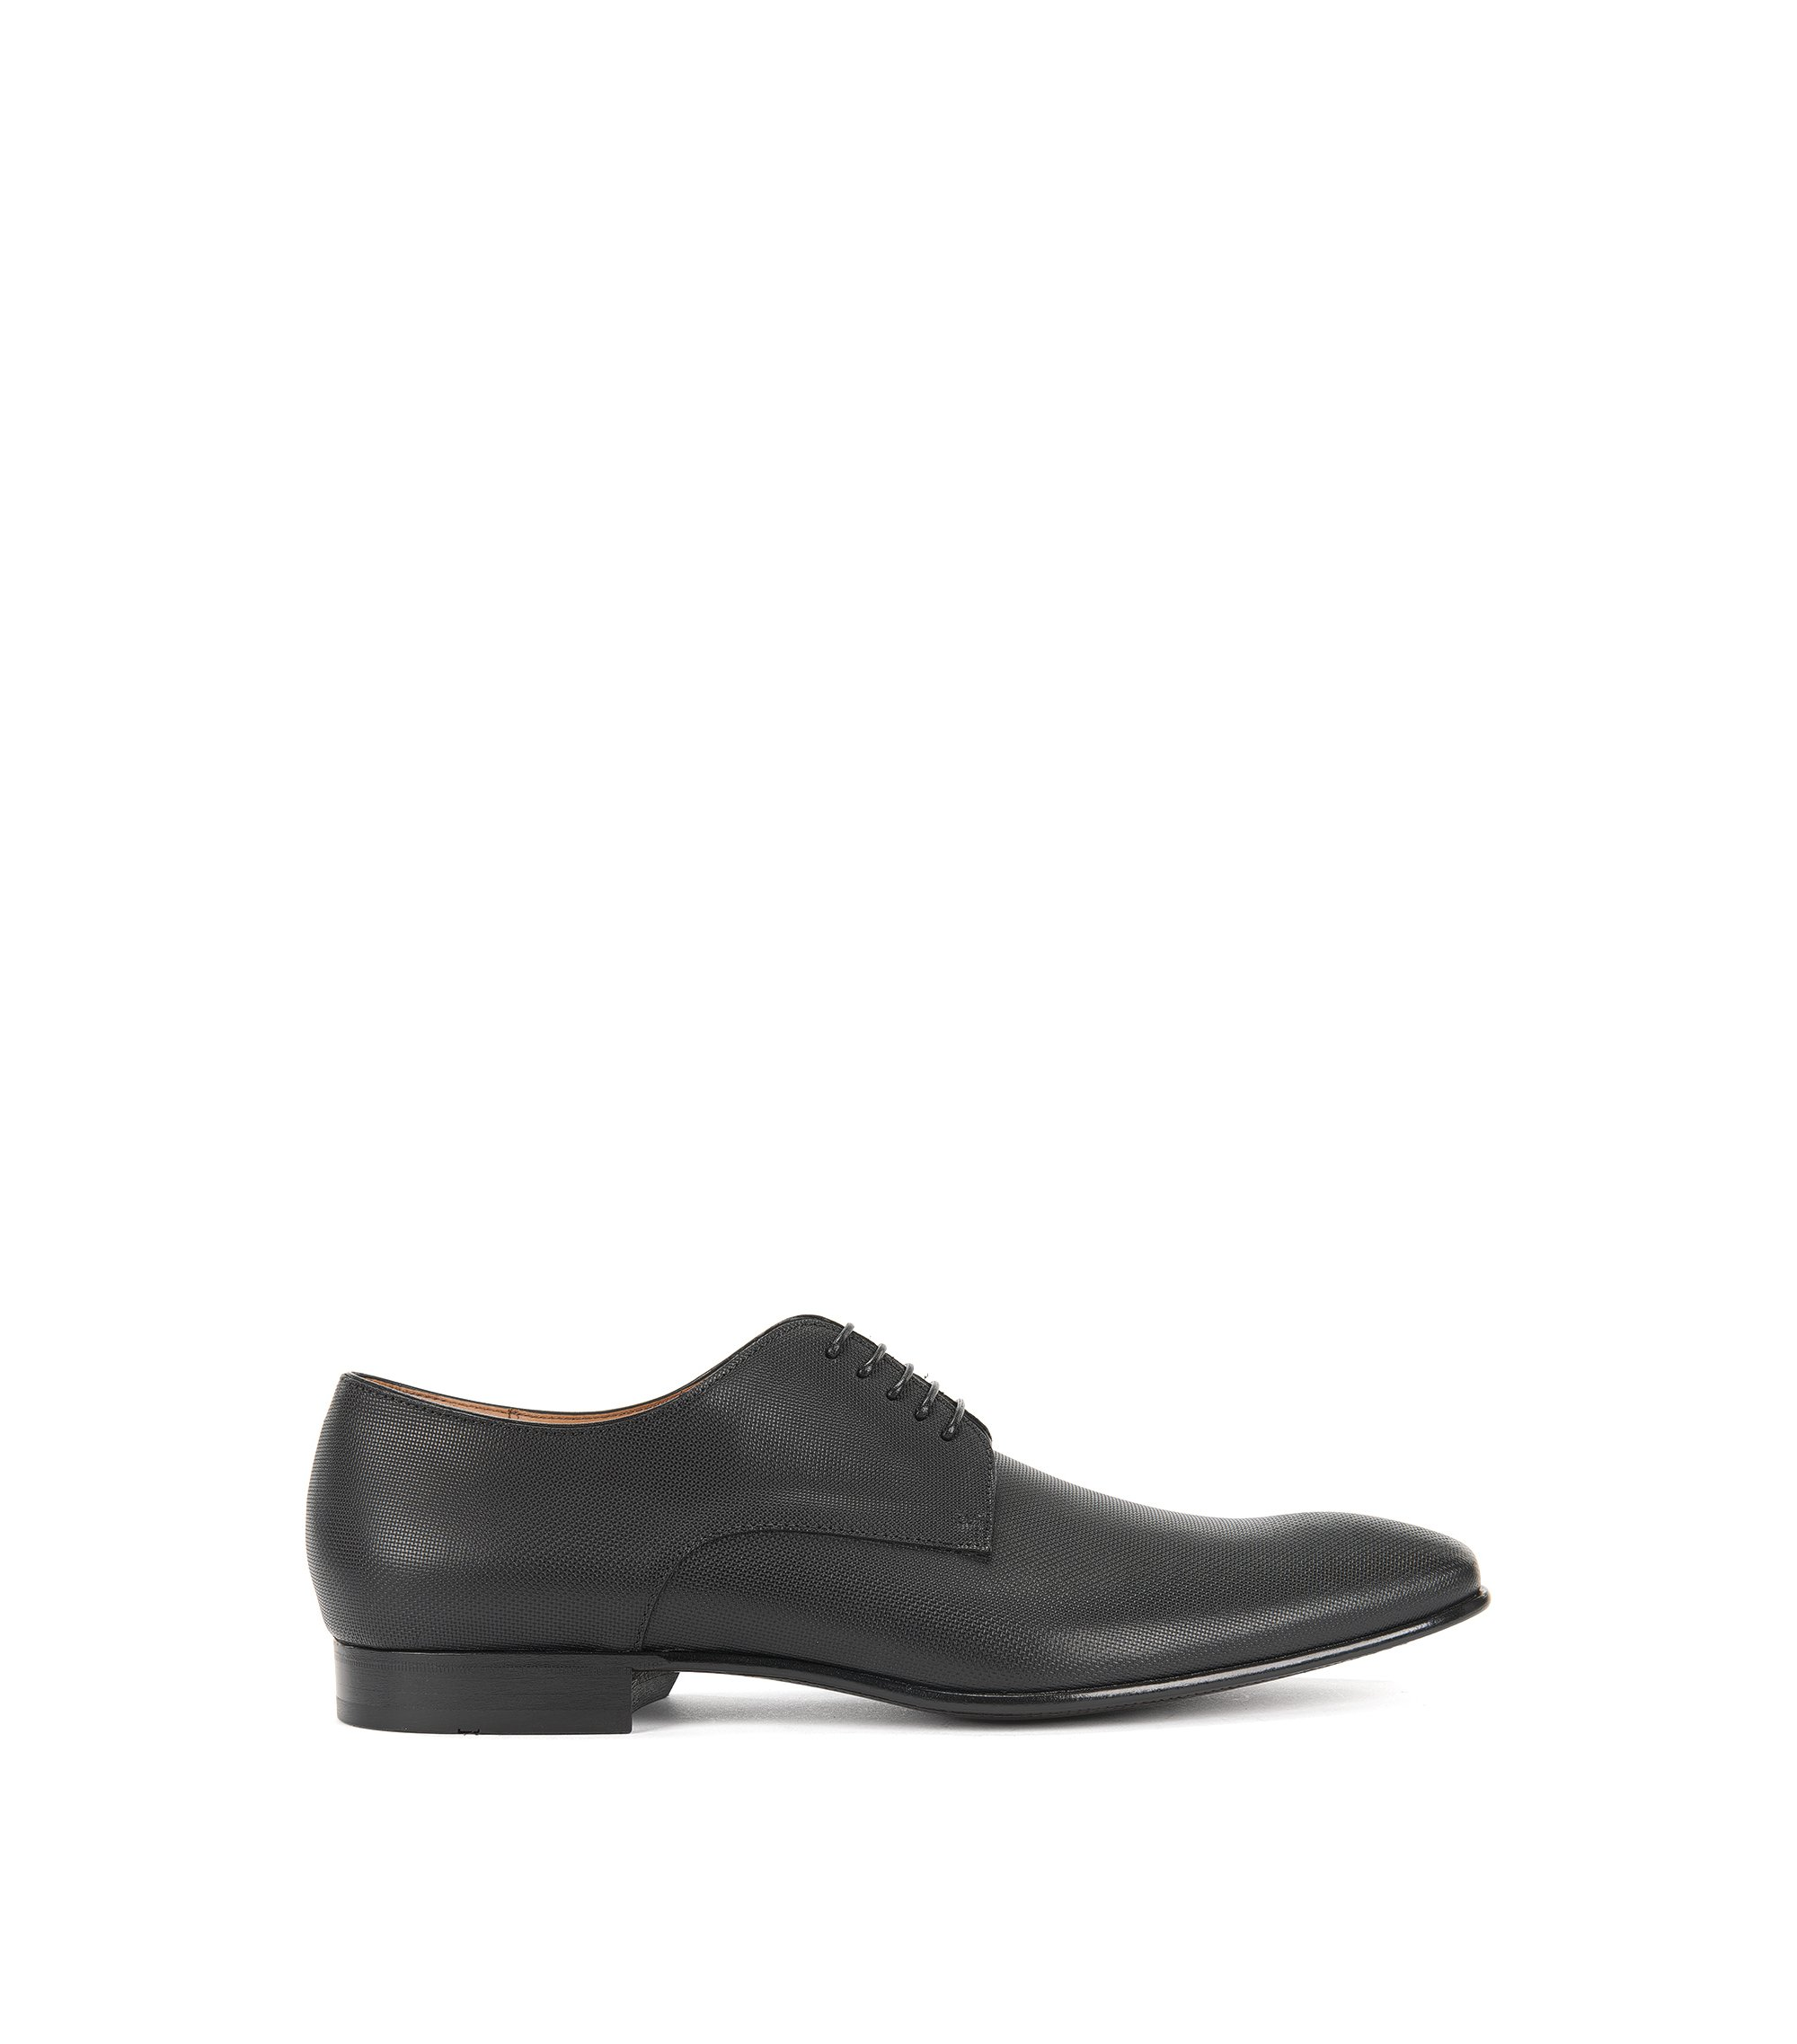 Italian Leather Derby Dress Shoe | Prindo, Black